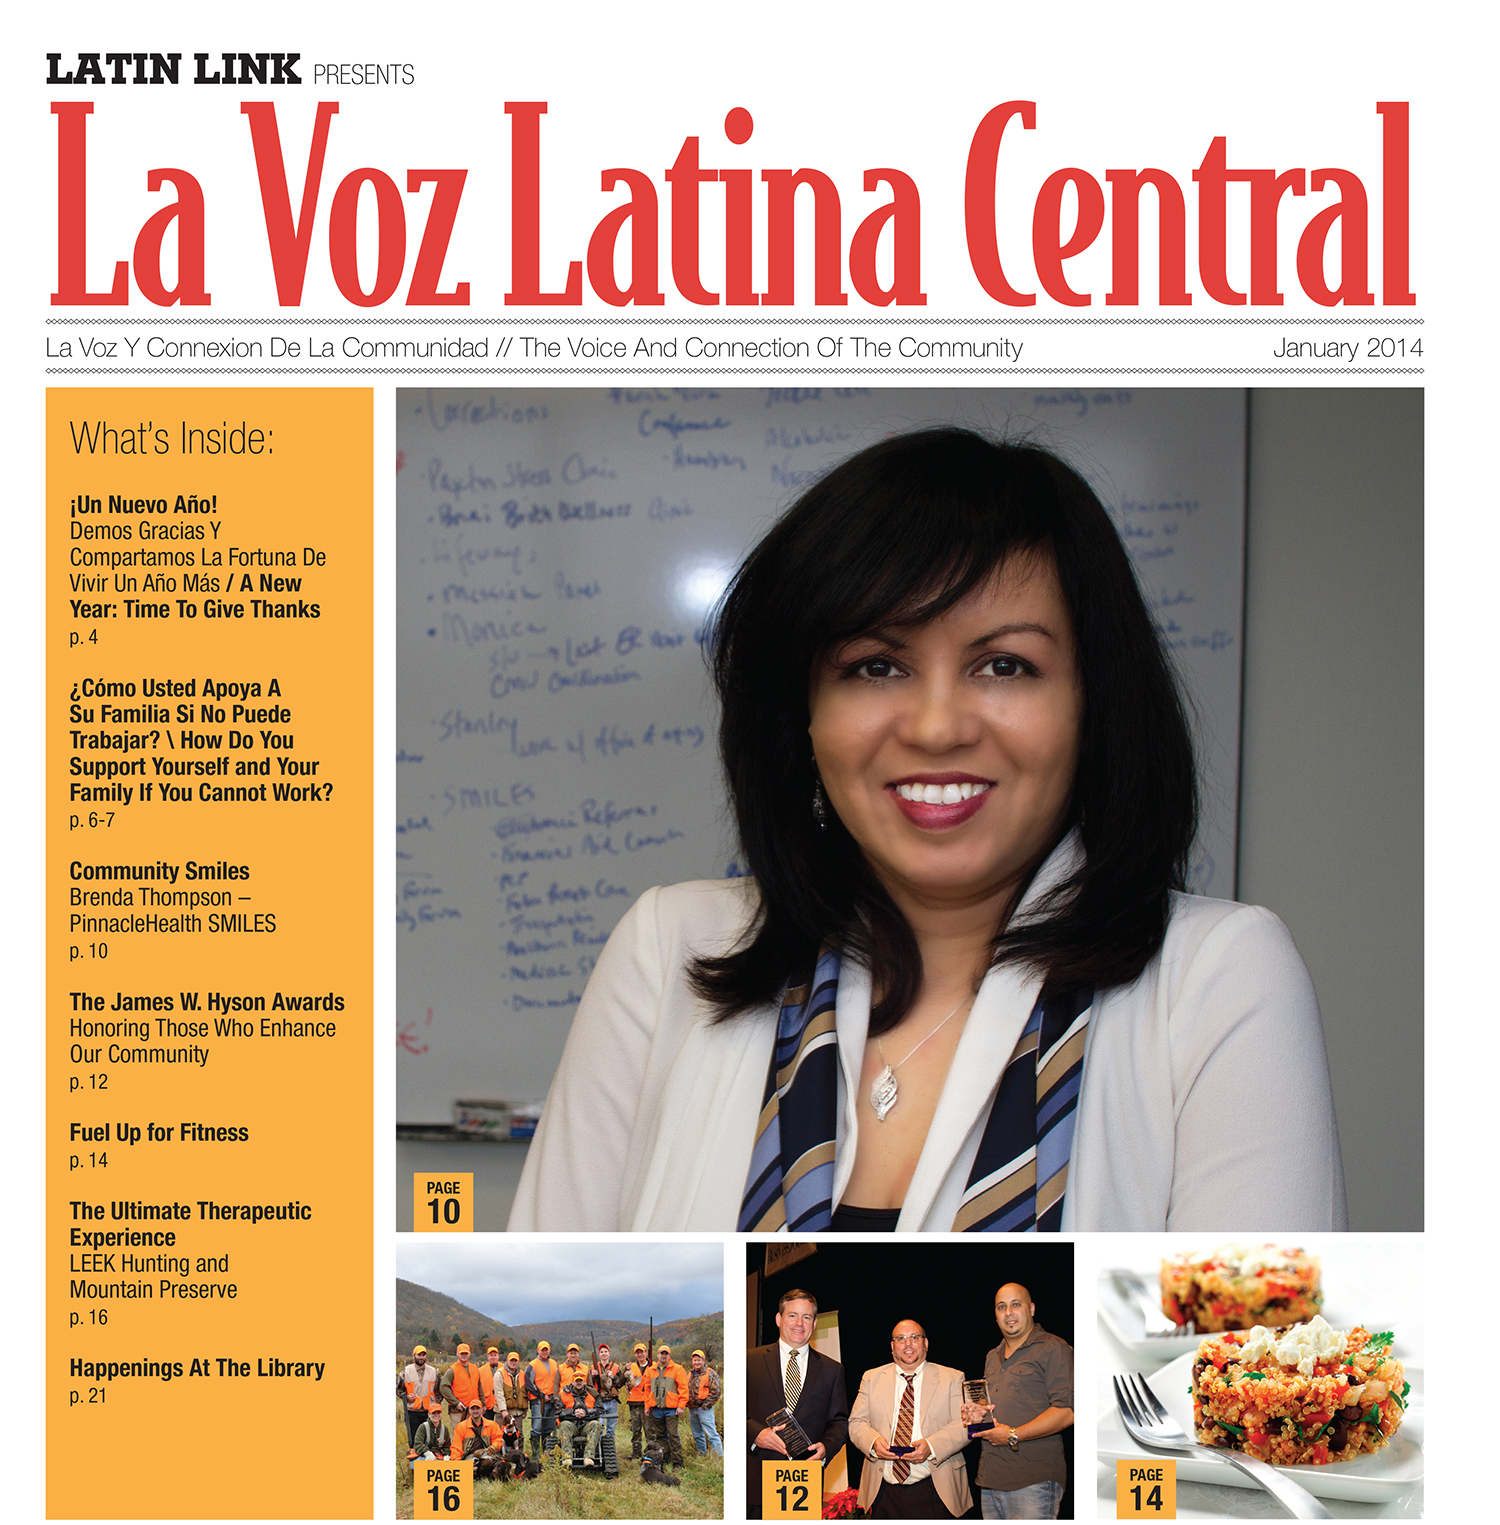 La Voz Latina Central Magazine Volume I